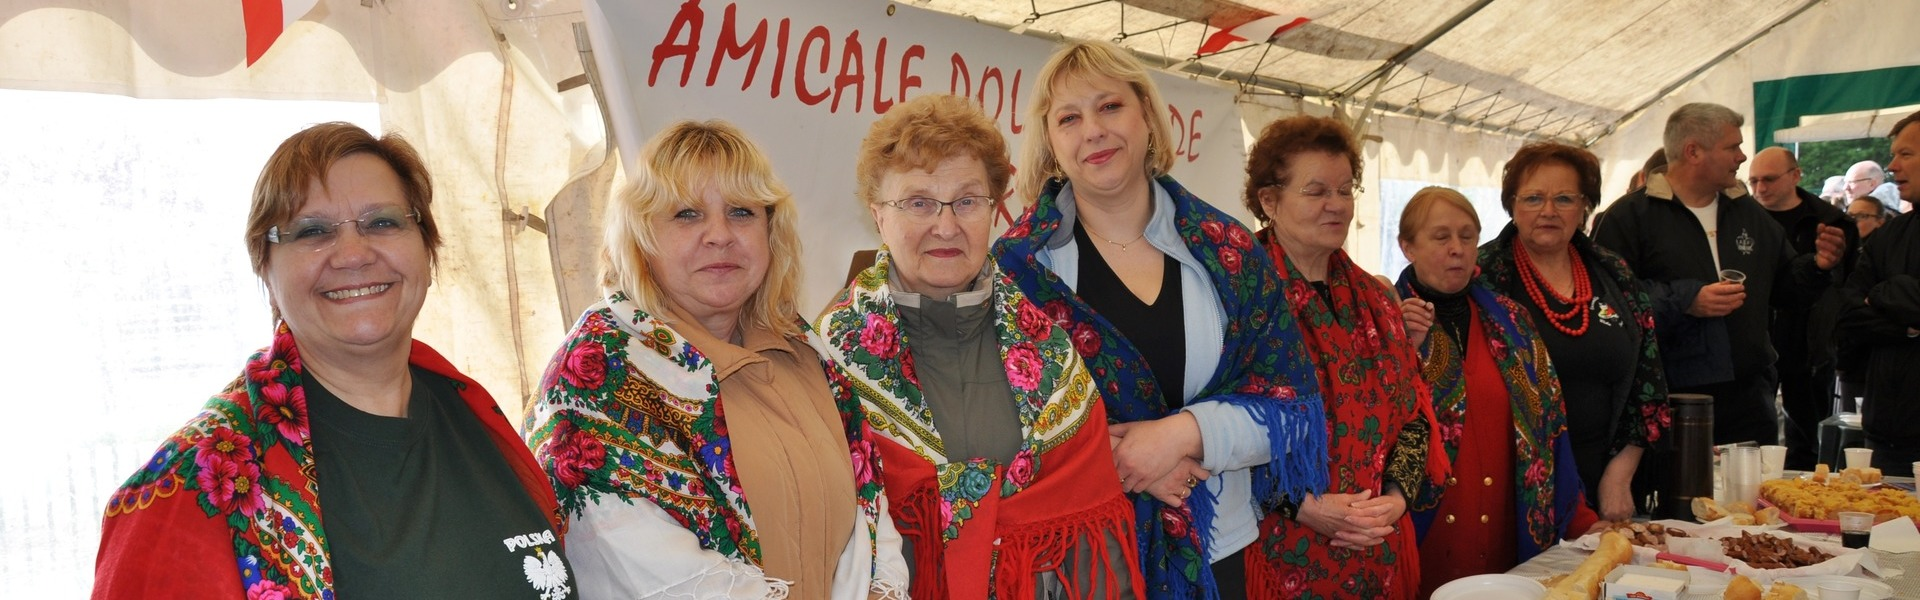 Amicale Polonaise Dourges